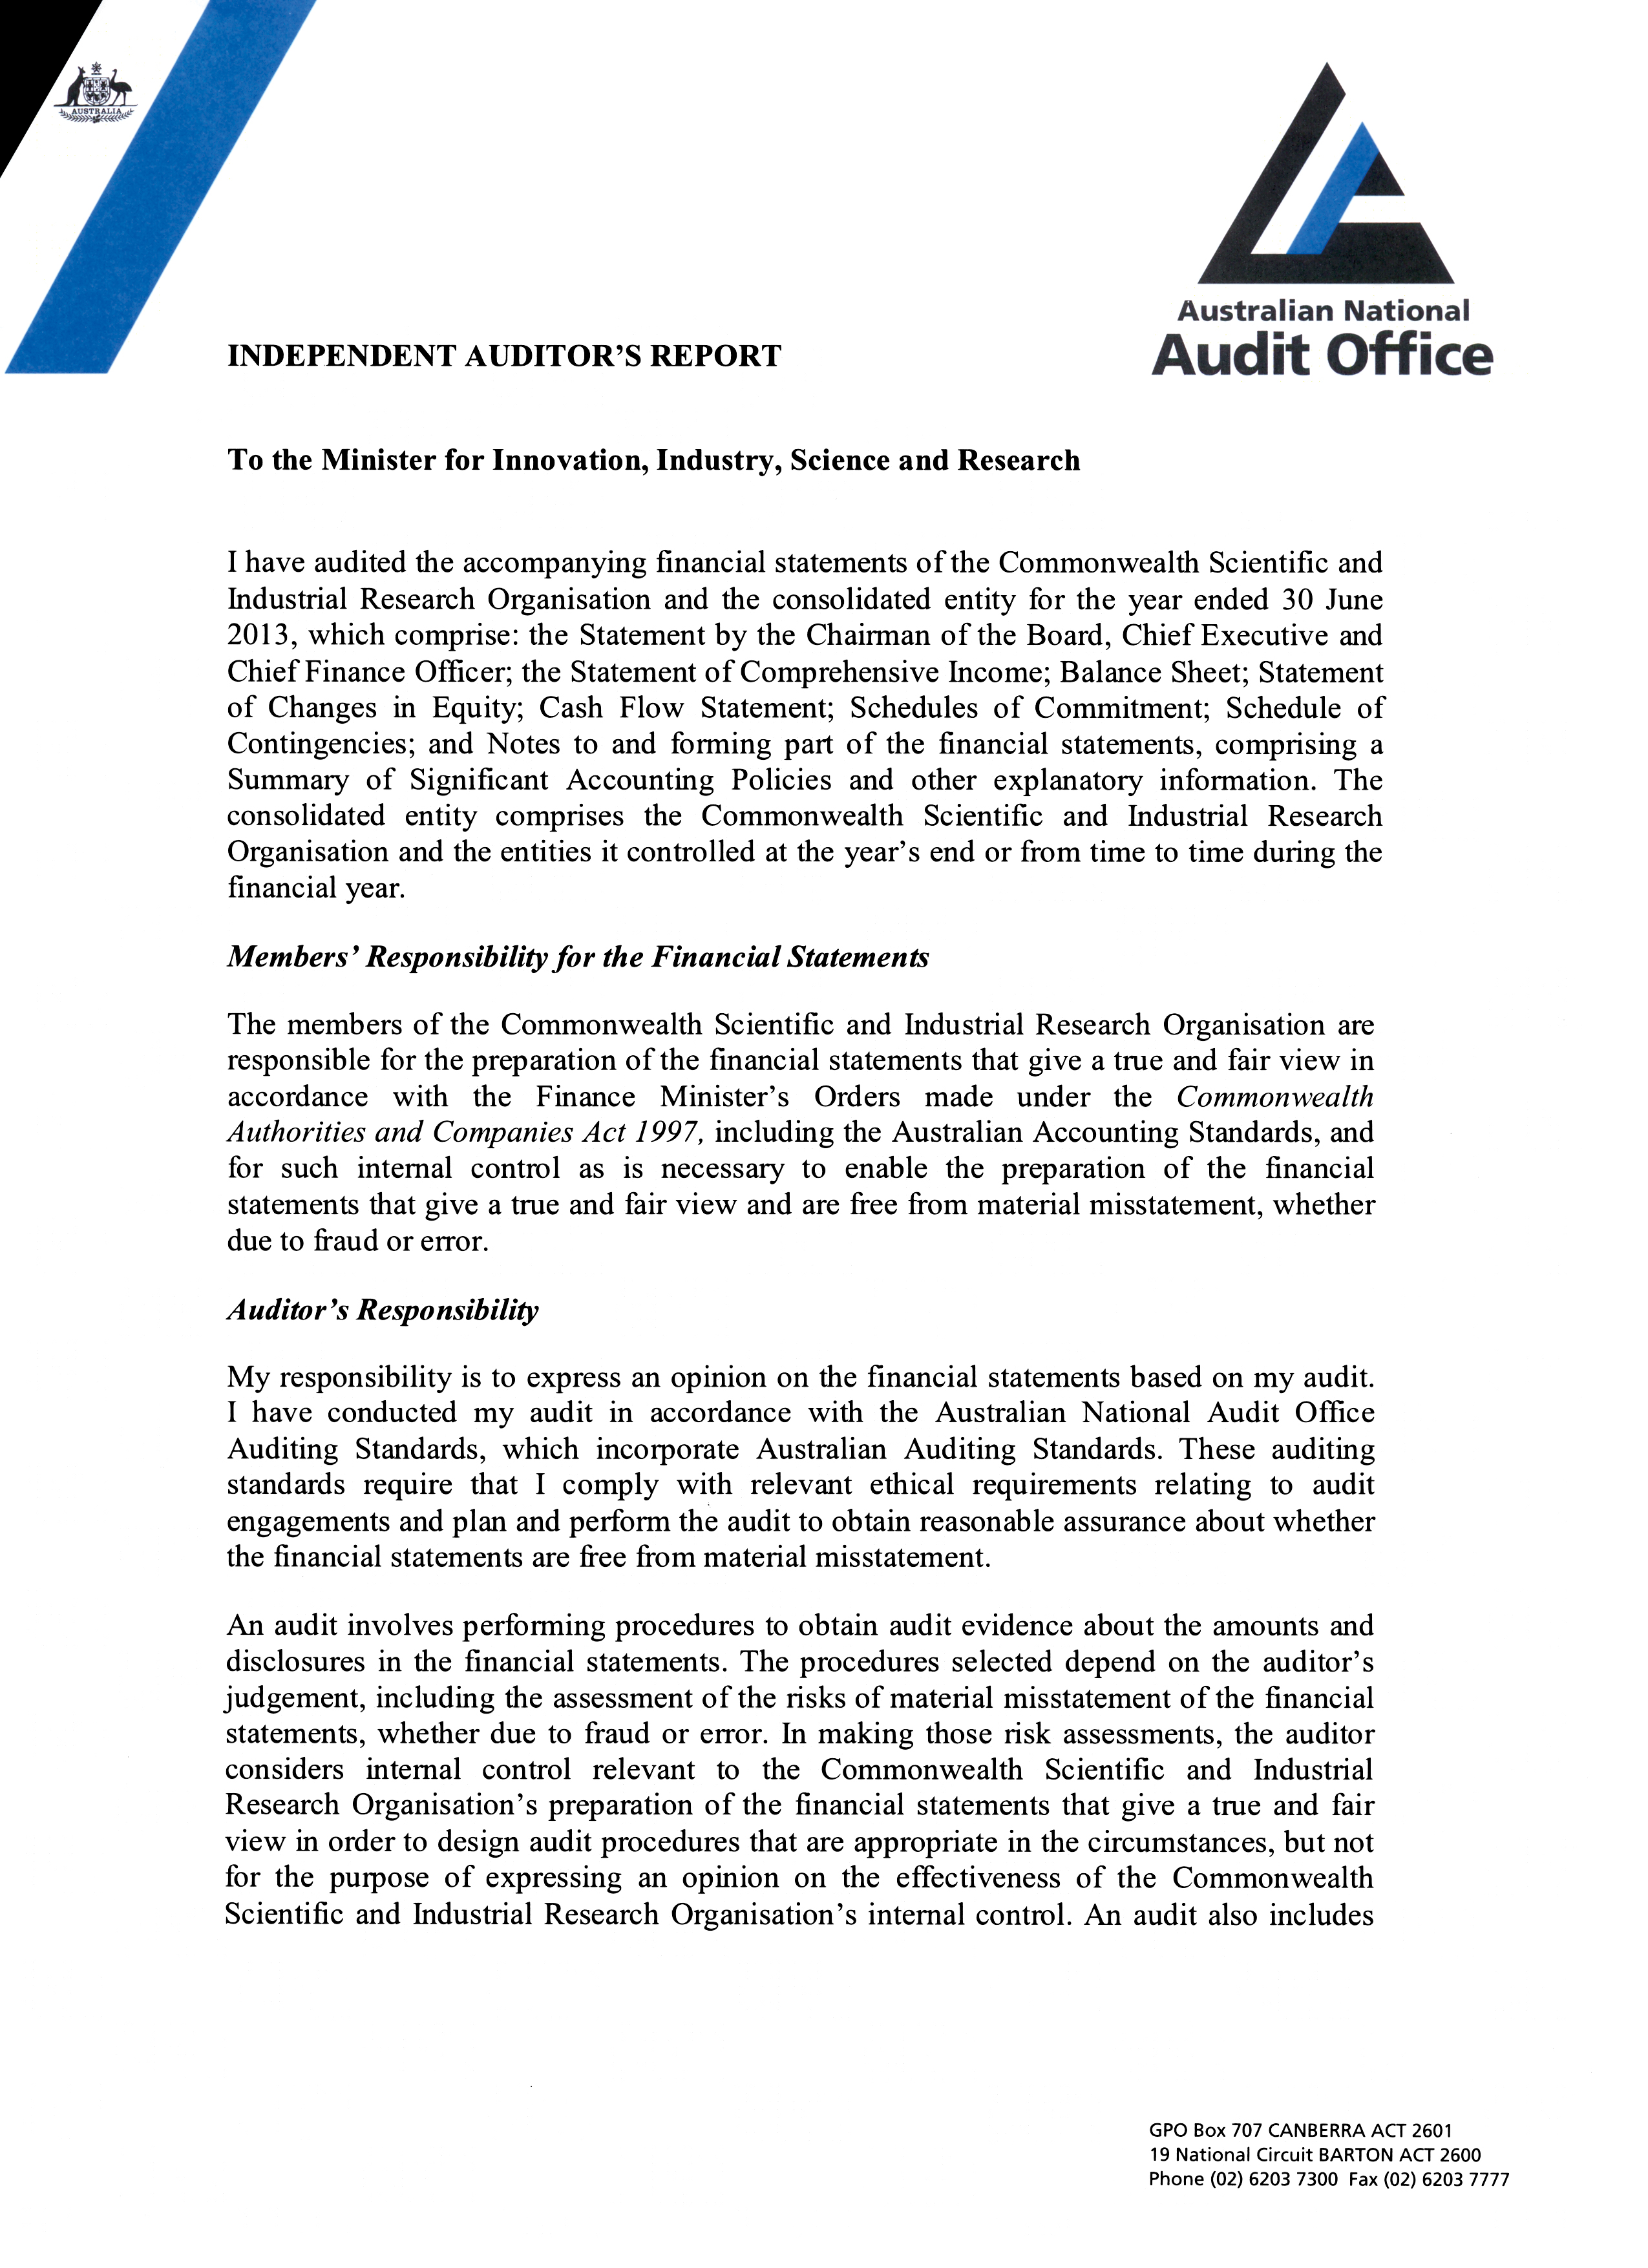 Screen capture of Independent Auditor's report for CSIRO 2012-13 financial statements page 1